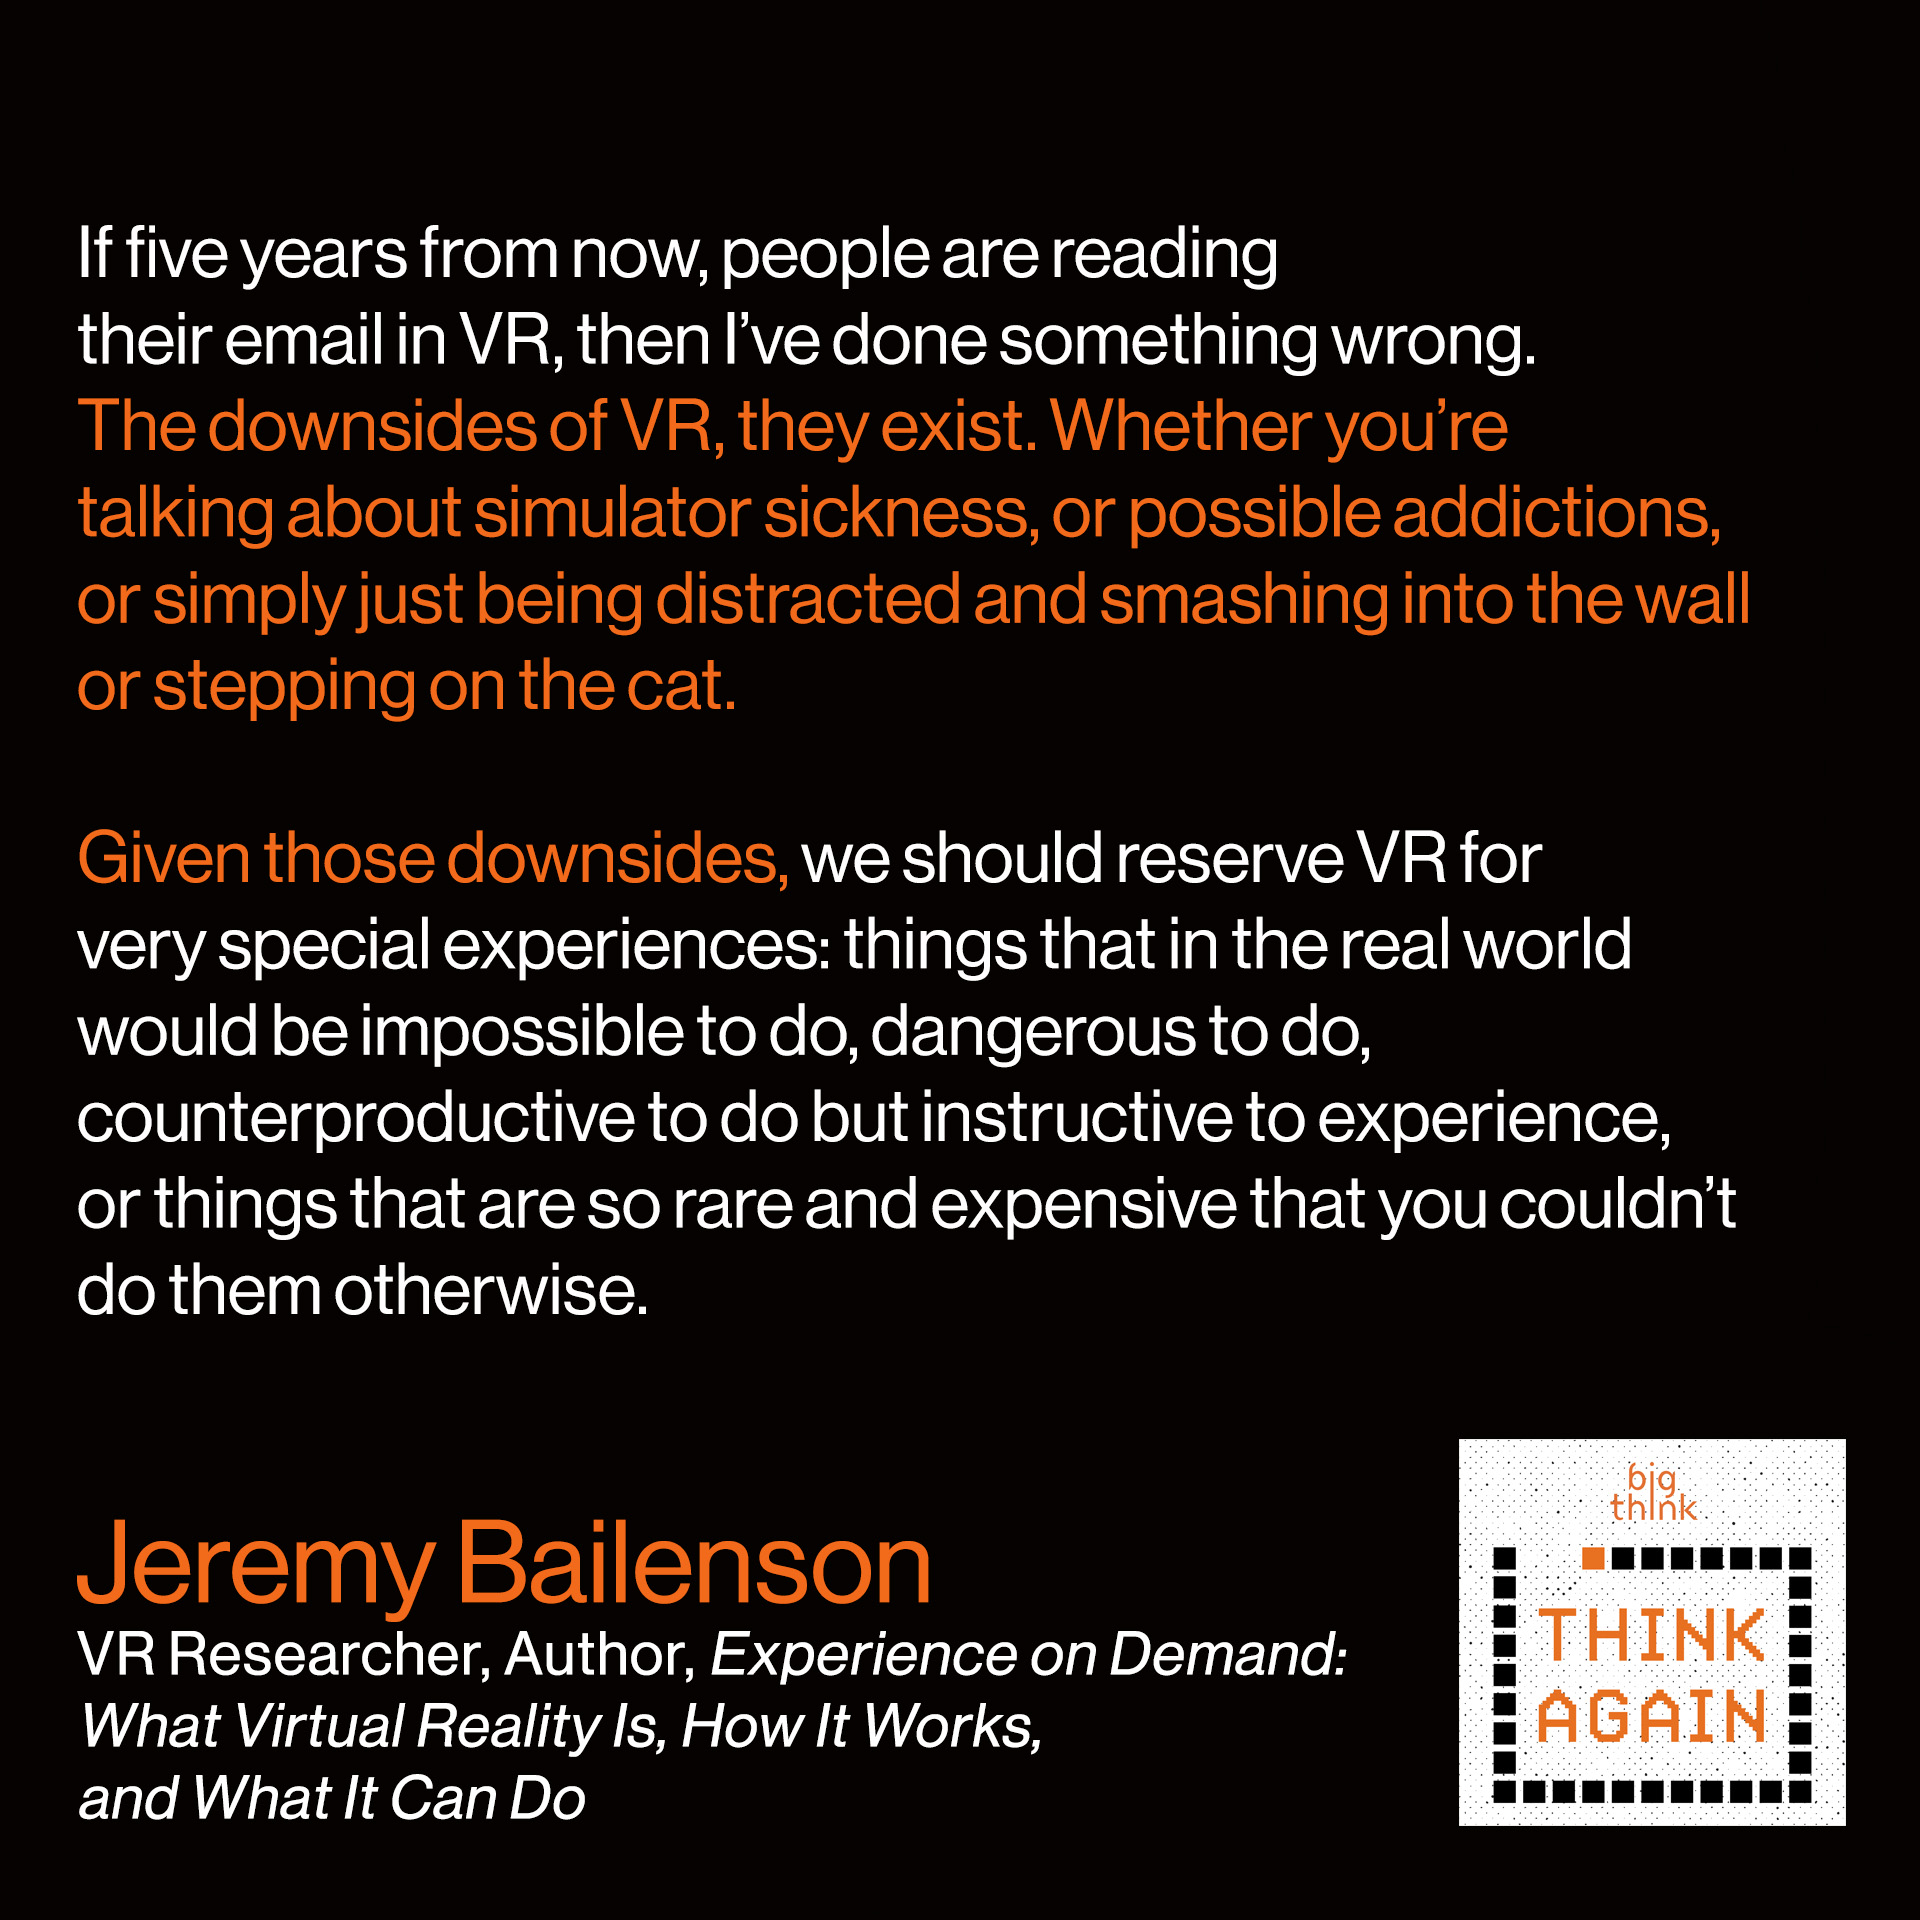 Jeremy Bailenson quote: If five years from now, people are reading their email in VR, then I've done something wrong.  